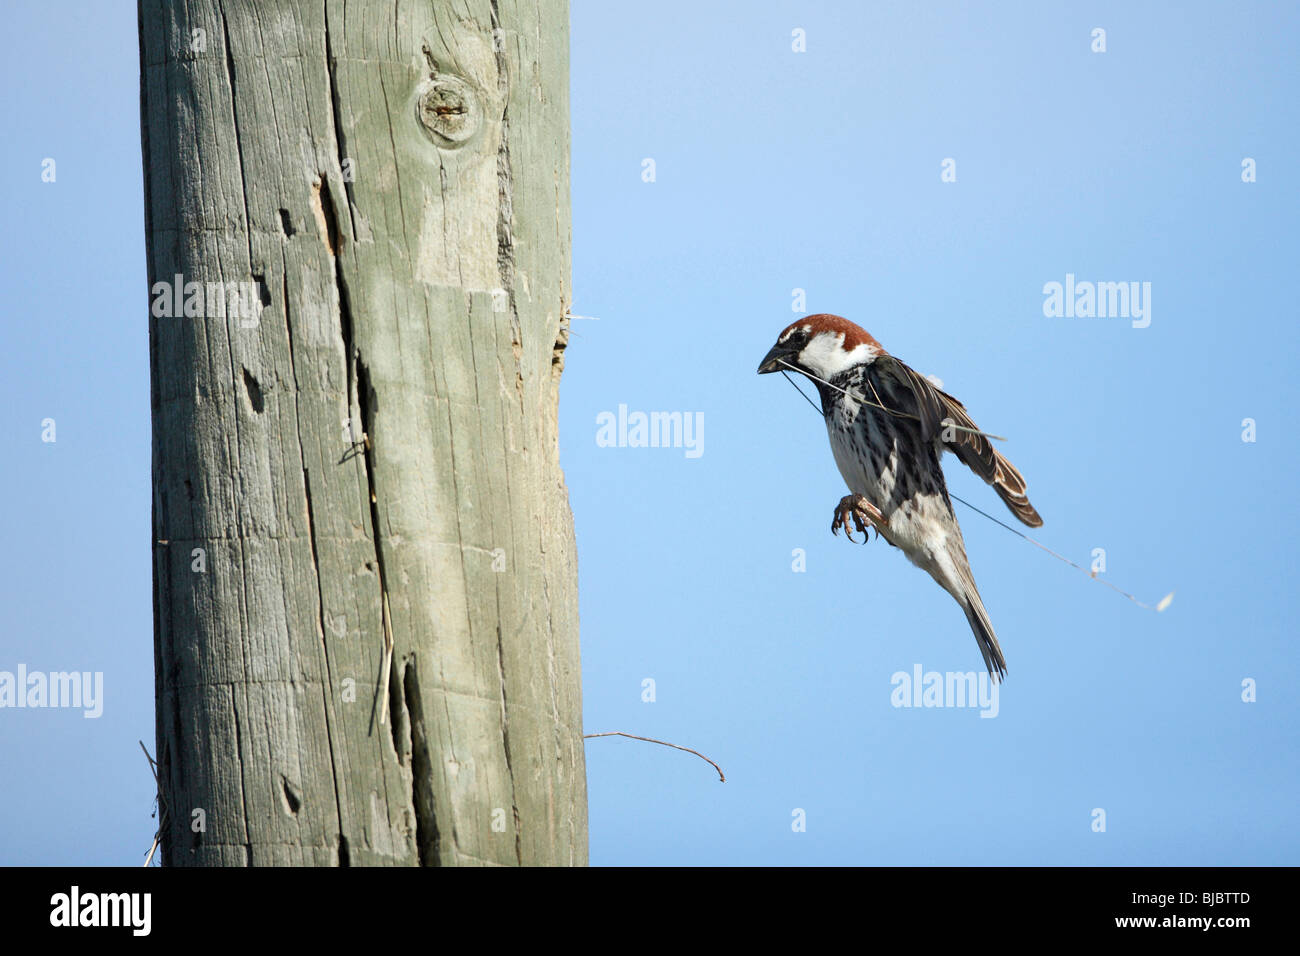 Spanish Sparrow (Passer hispaniolensis), male landing at nest with nest material, Portugal - Stock Image